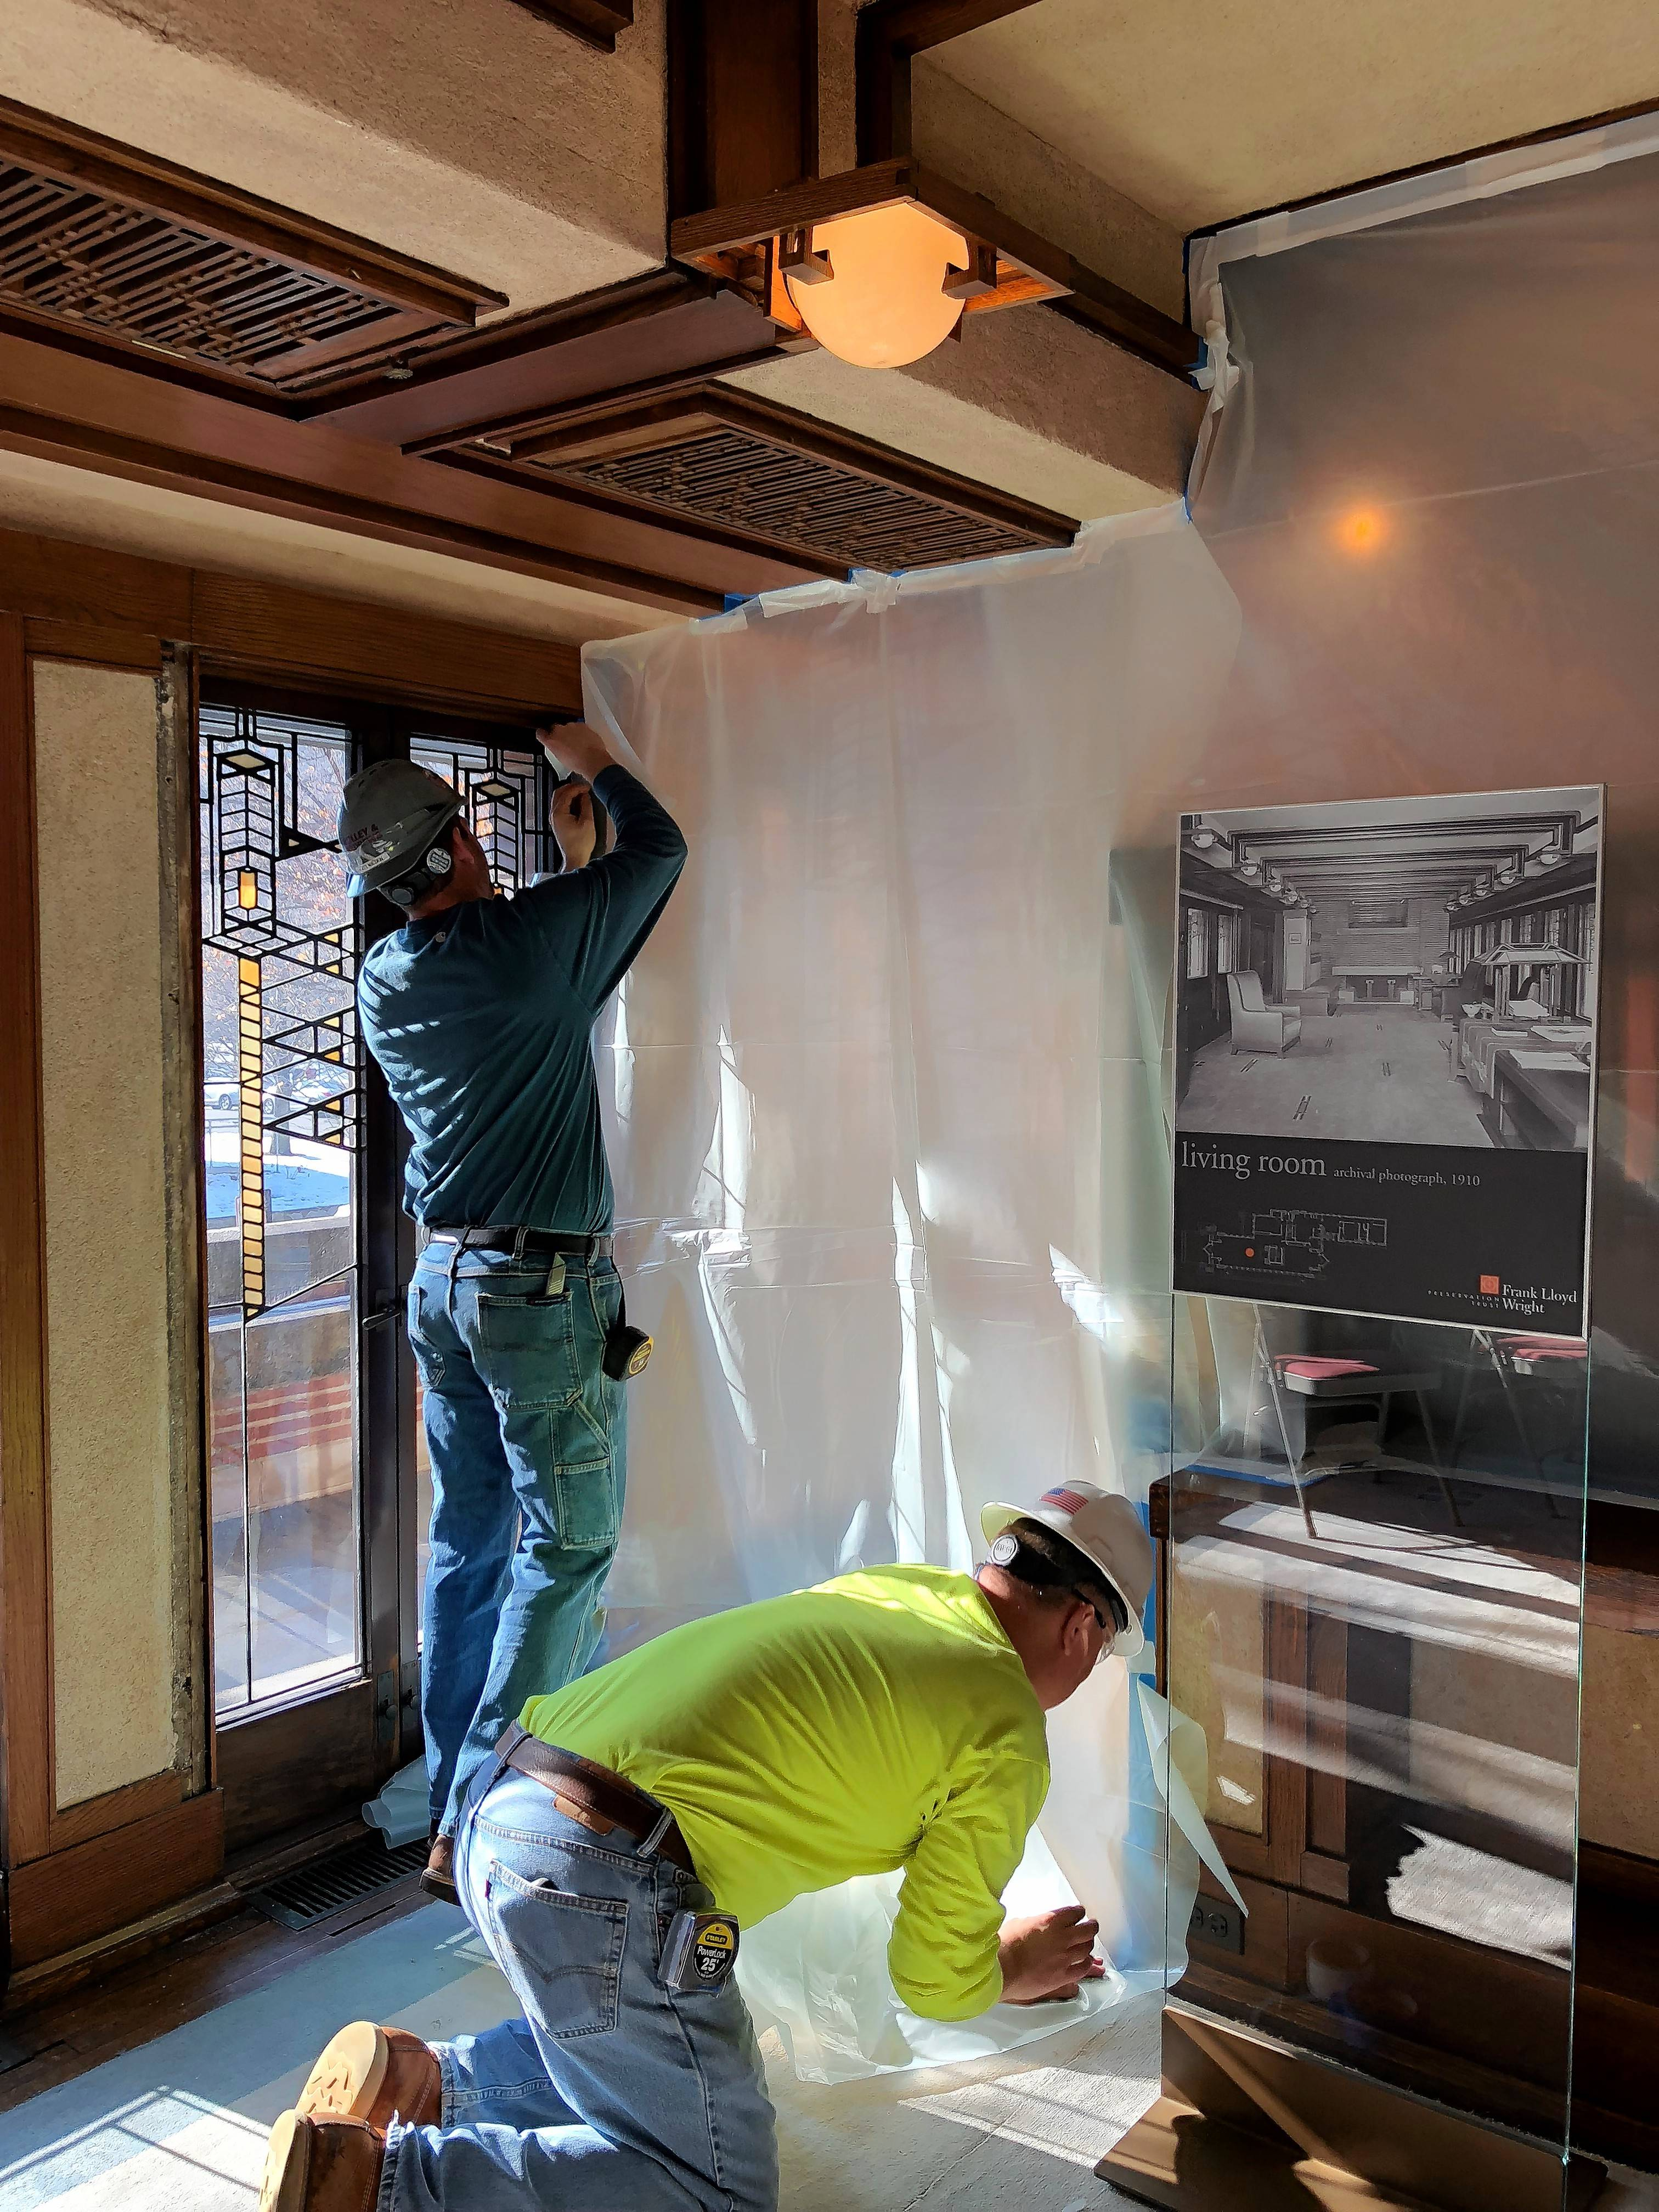 The Robie House living room area is curtained off as interior restoration begins on Jan. 8. The western portions of the main floor and ground floor are being restored during the first phase.